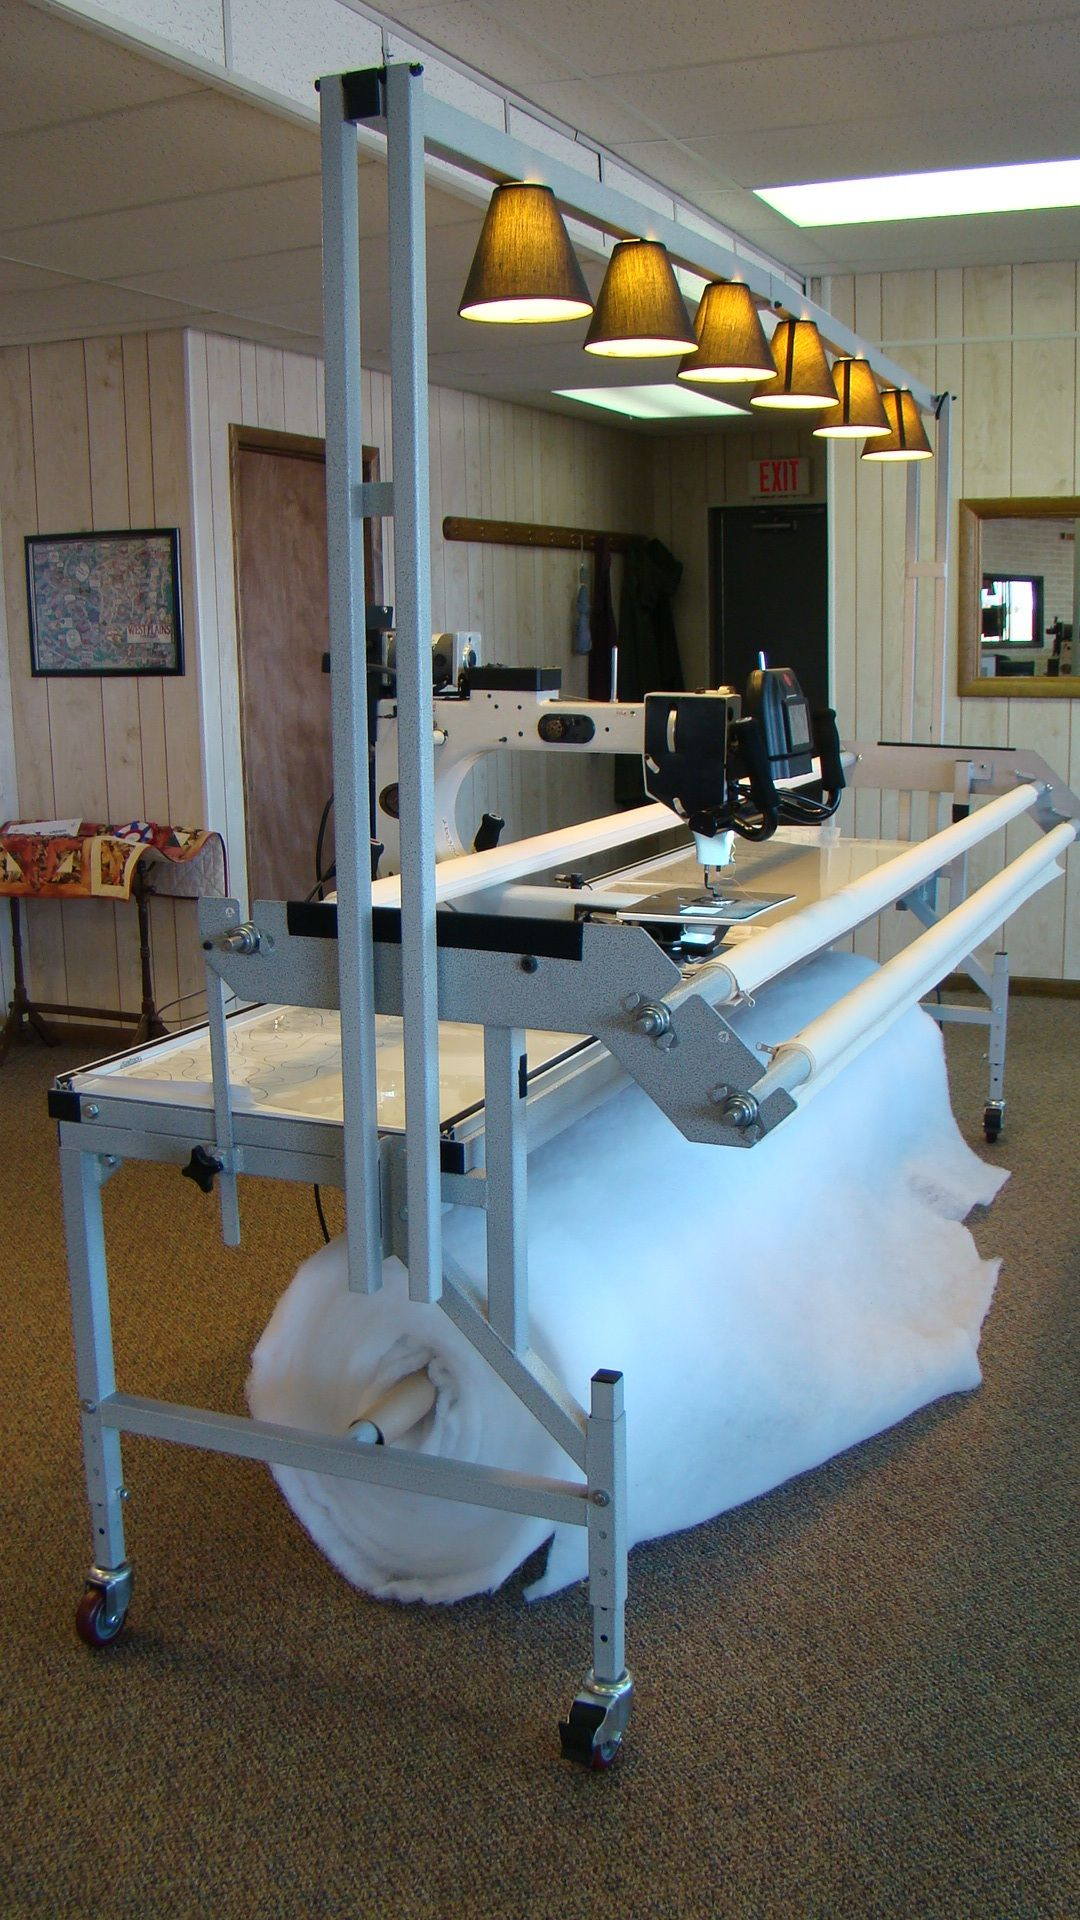 king arm machines machine long tools quilting quilt for quilter